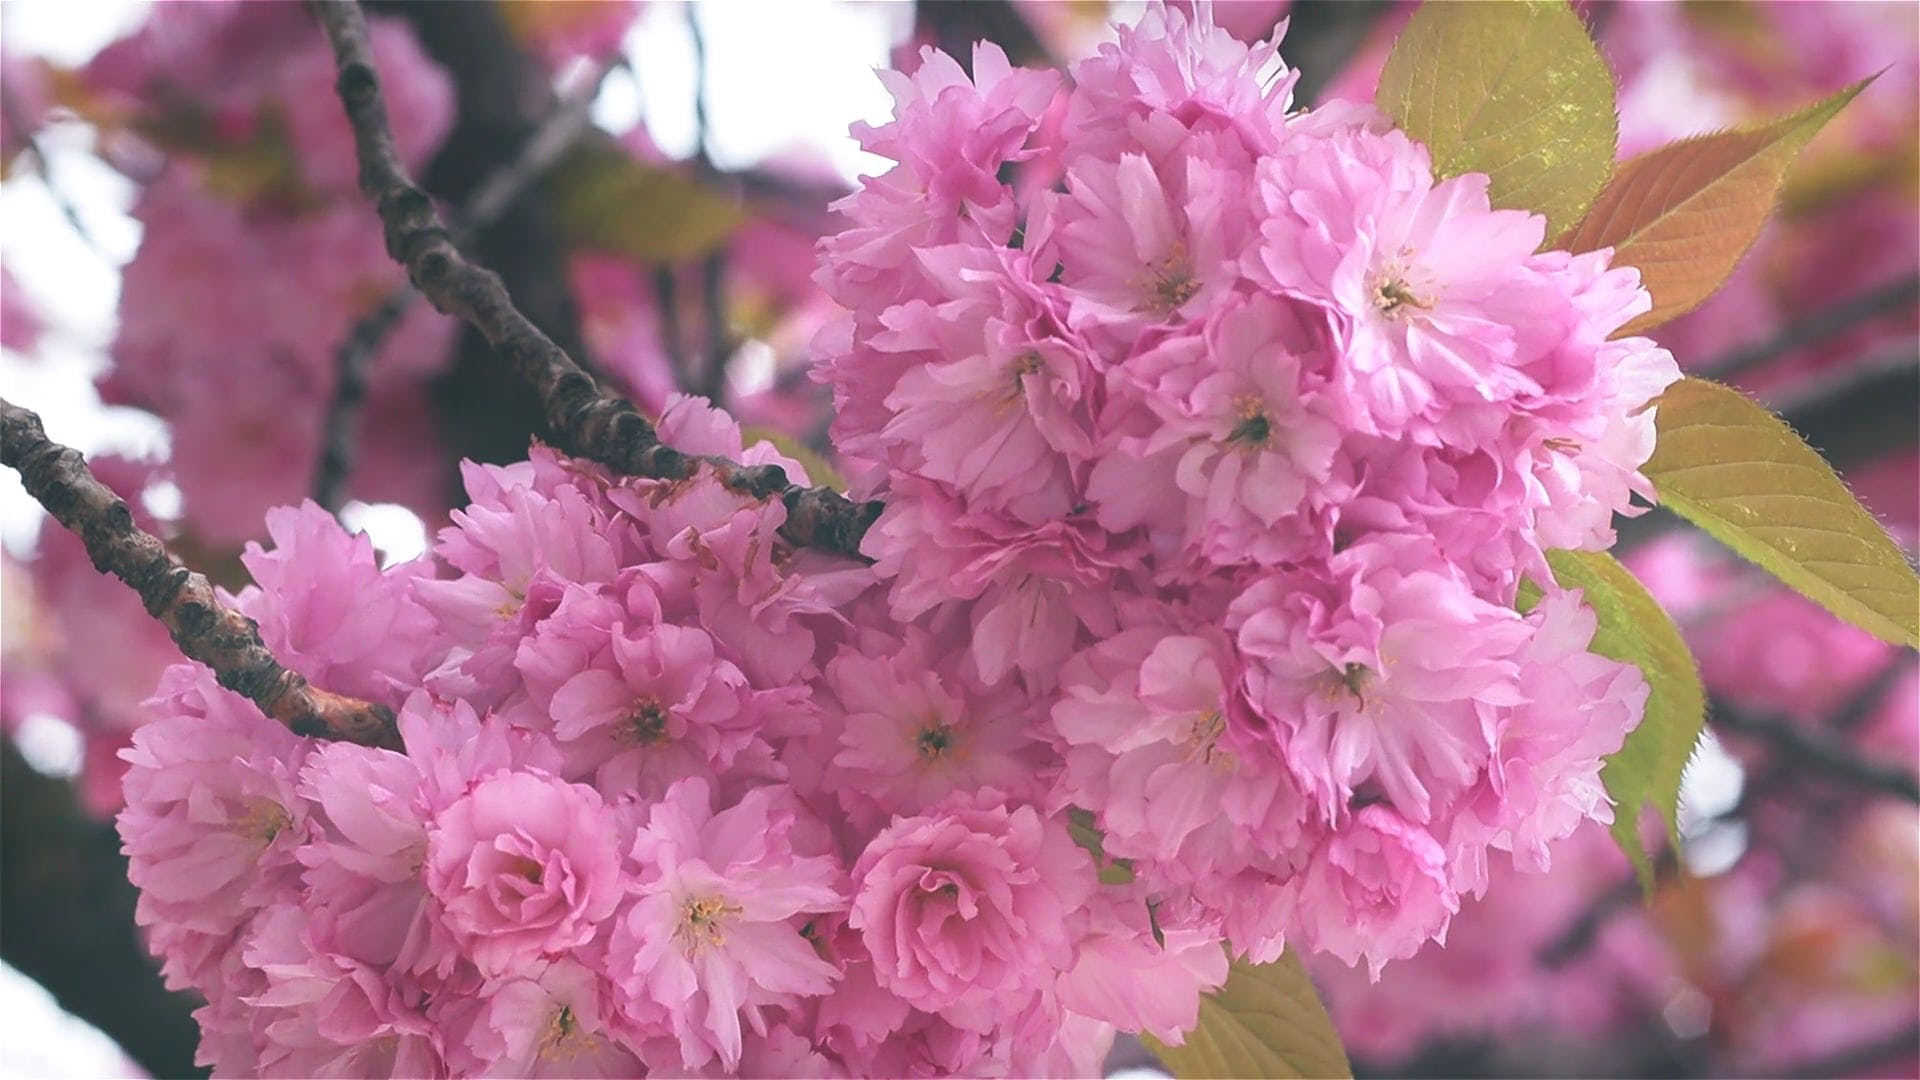 Bunch Of Pink Flowers On Tree